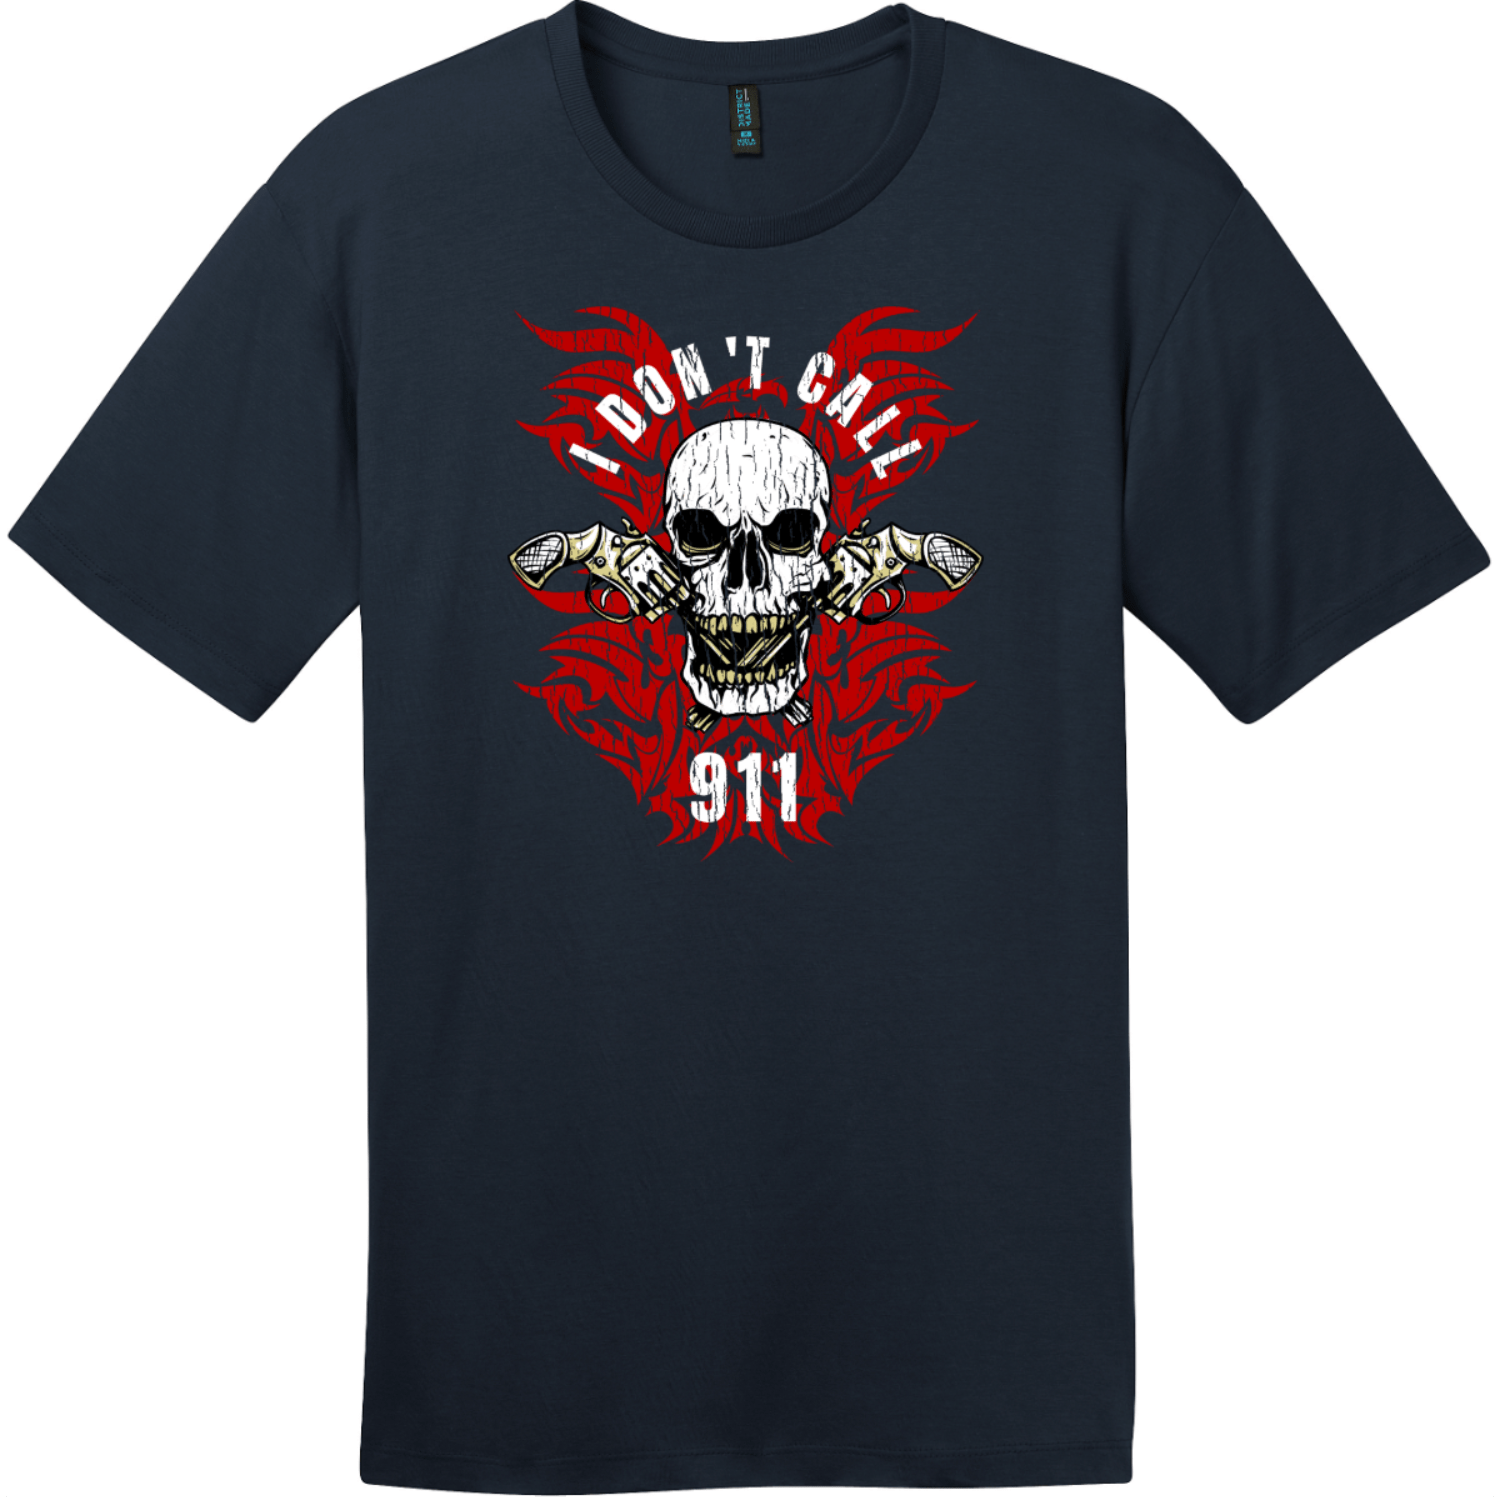 I Dont Call 911 T-Shirt New Navy District Perfect Weight Tee DT104